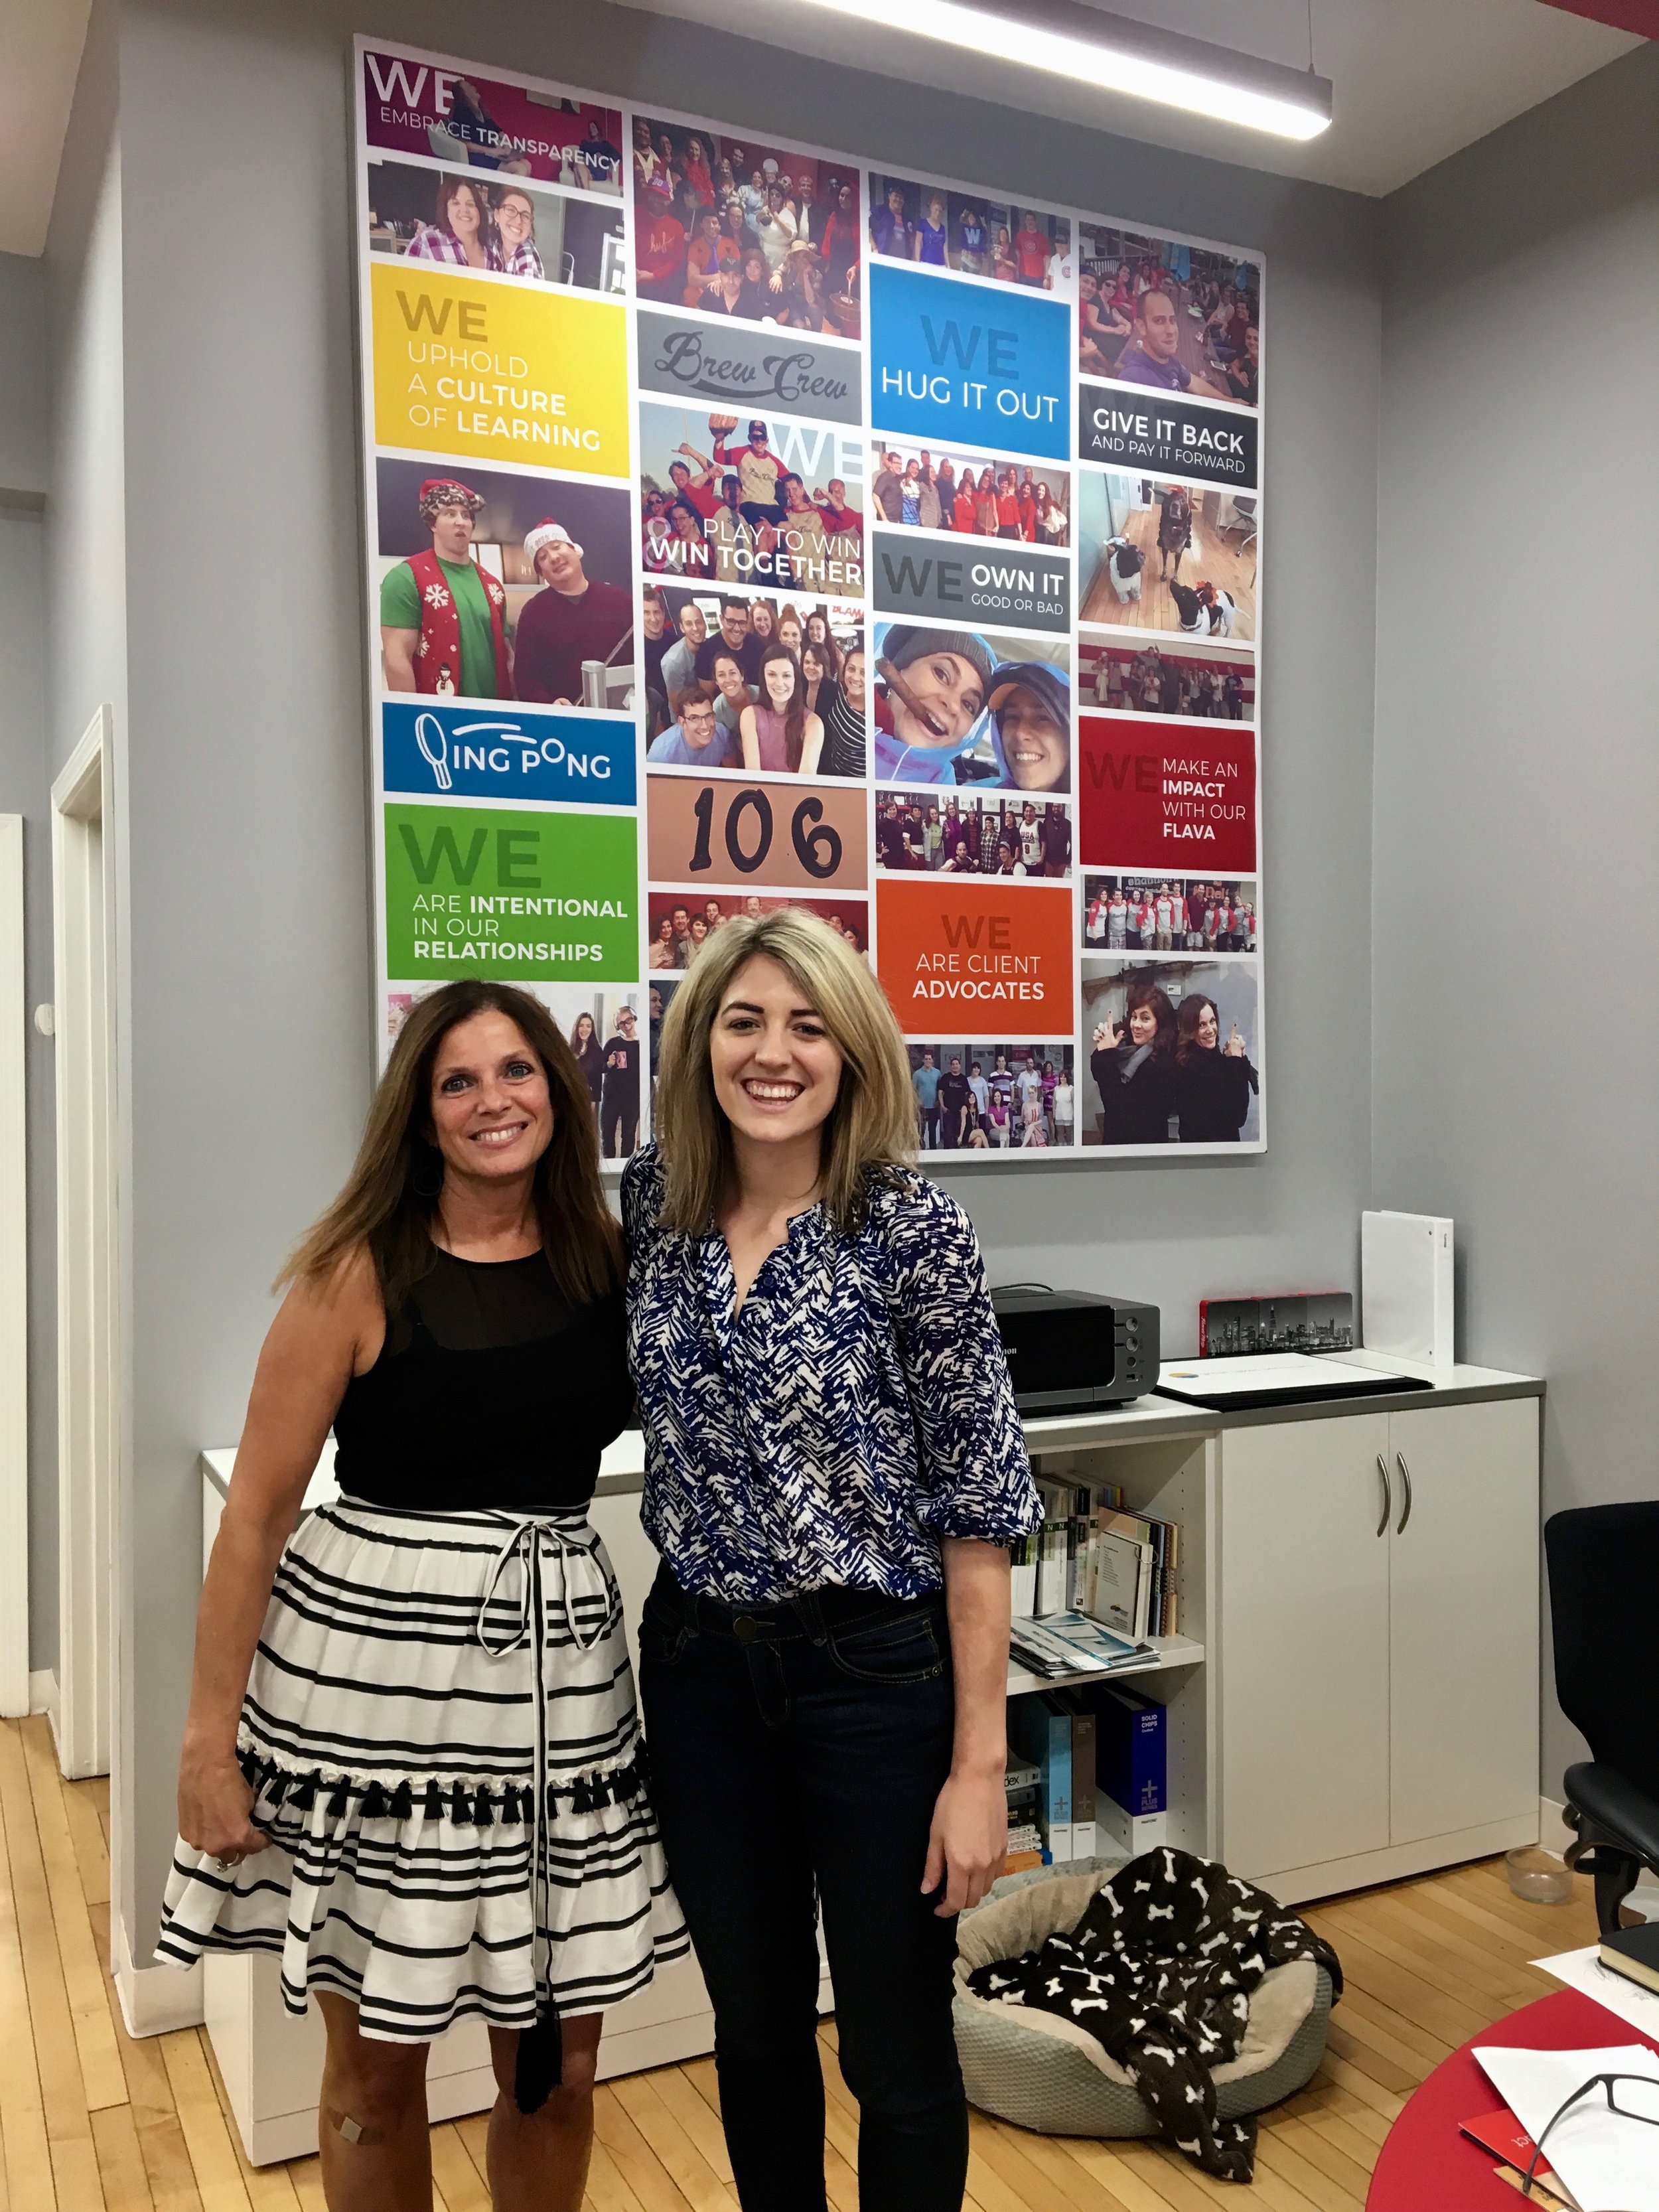 Kathy Steele and Julia Kortberg pose in front of the values-wall.